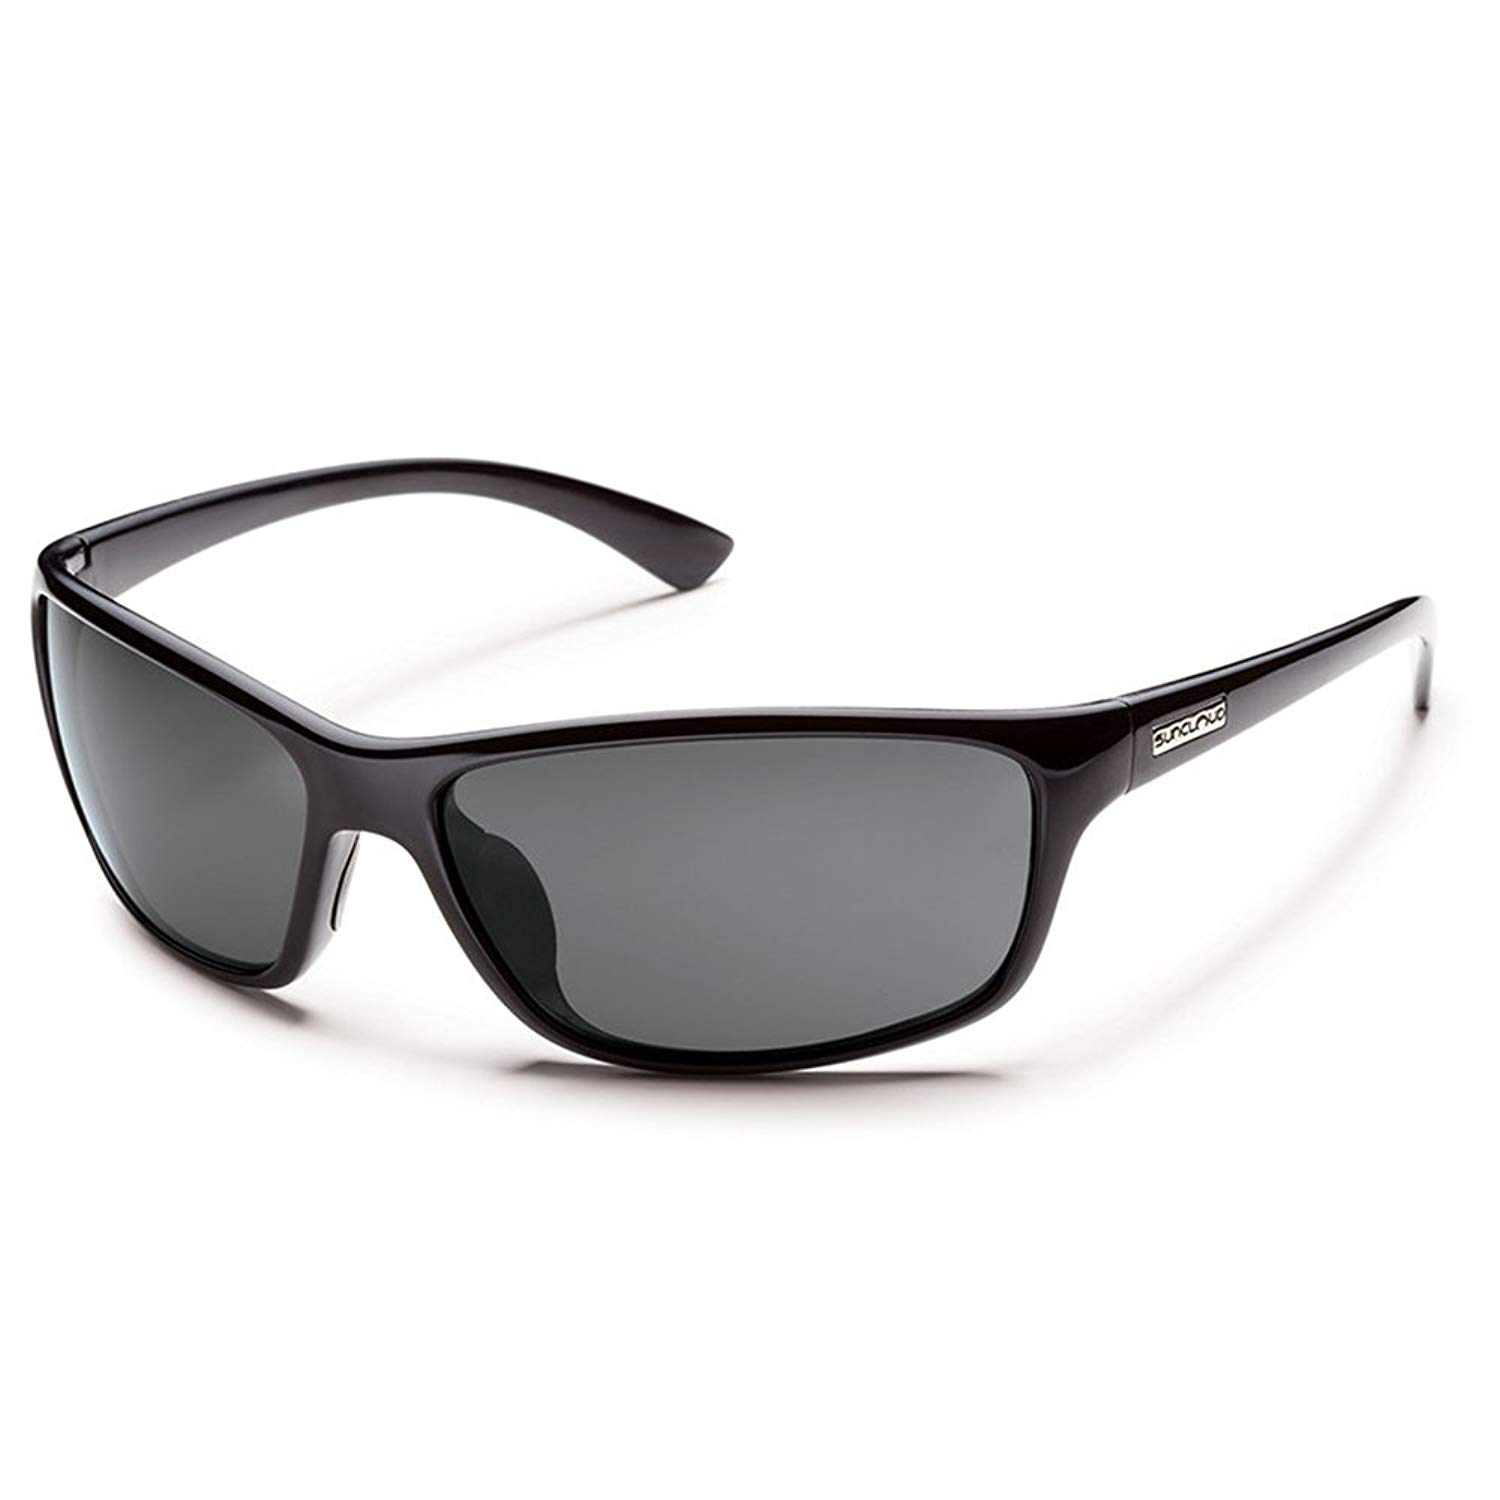 26c09f0f79 Get Quotations · Suncloud Optics Sentry Polarized Sunglasses